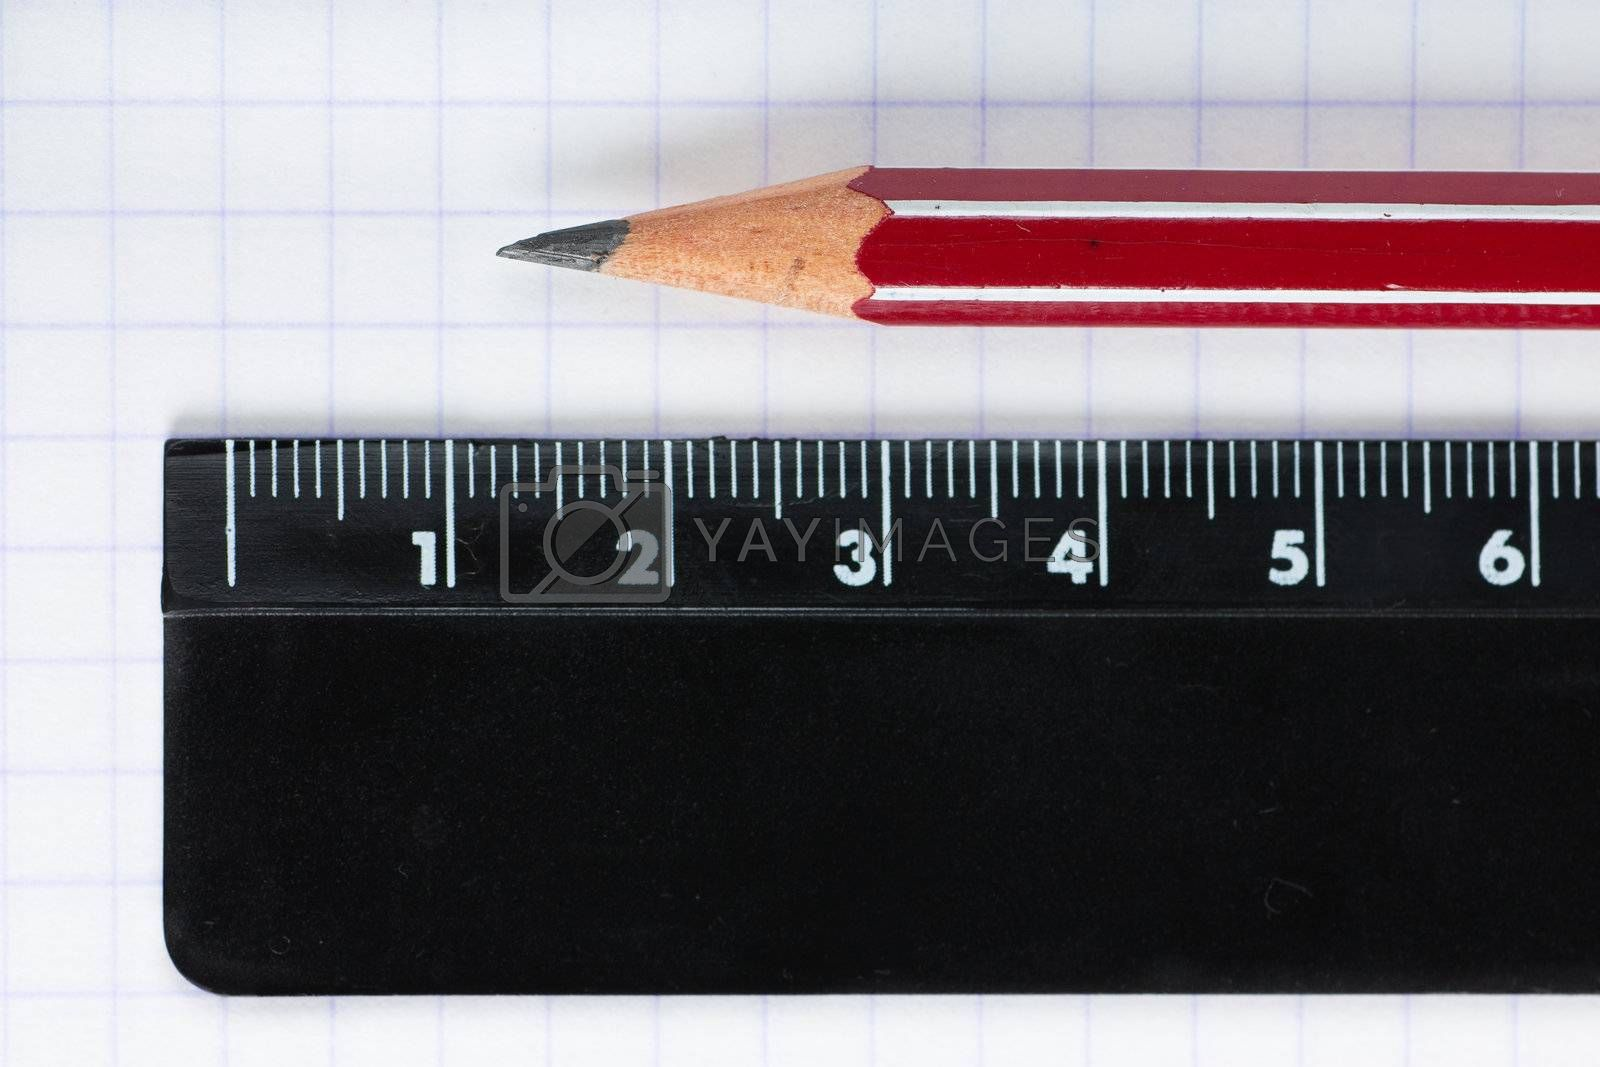 Macro view of pencil and ruler on exercise book page